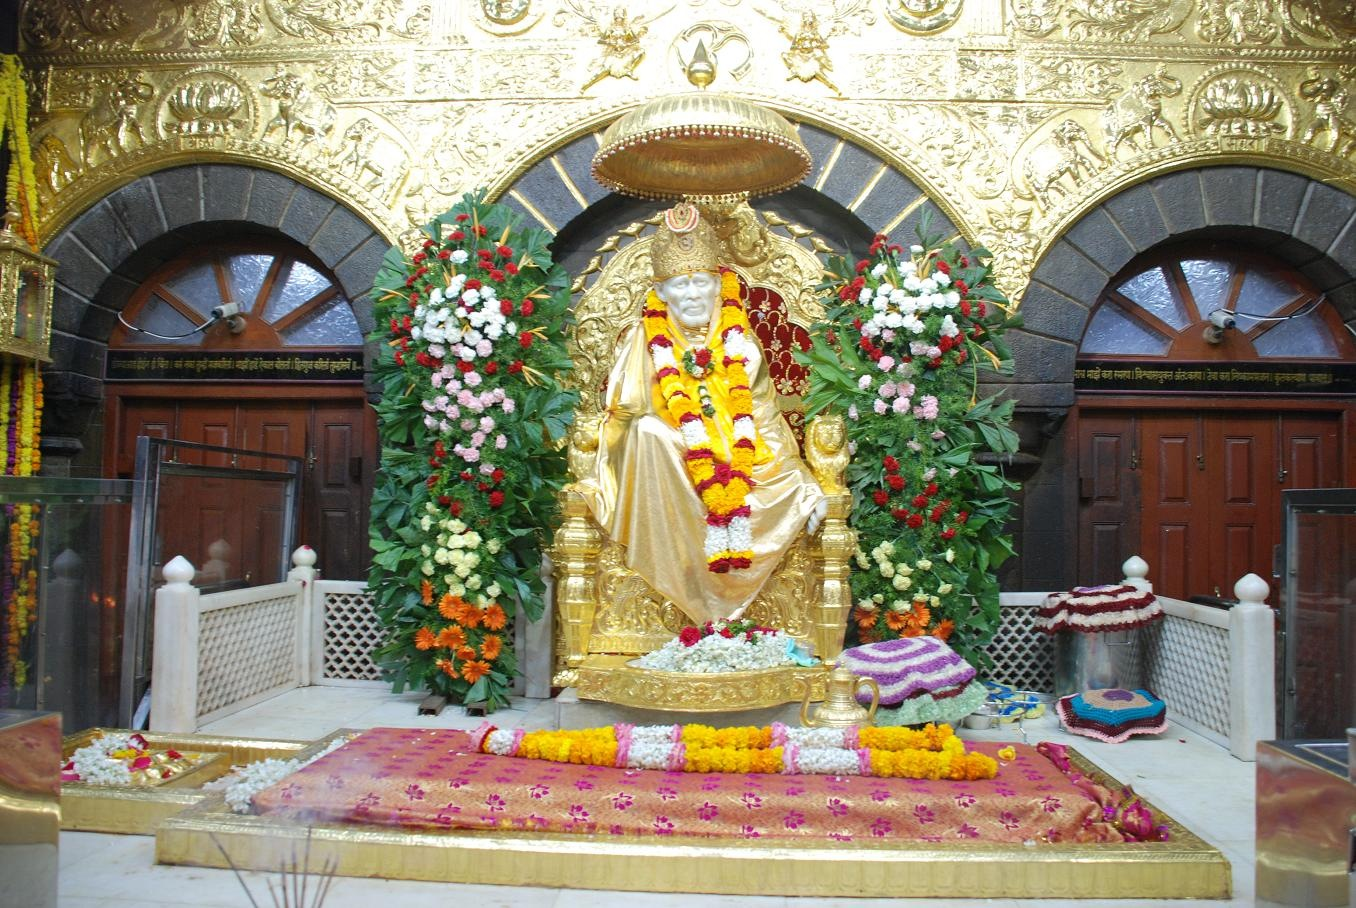 Shree Saint Sai Baba